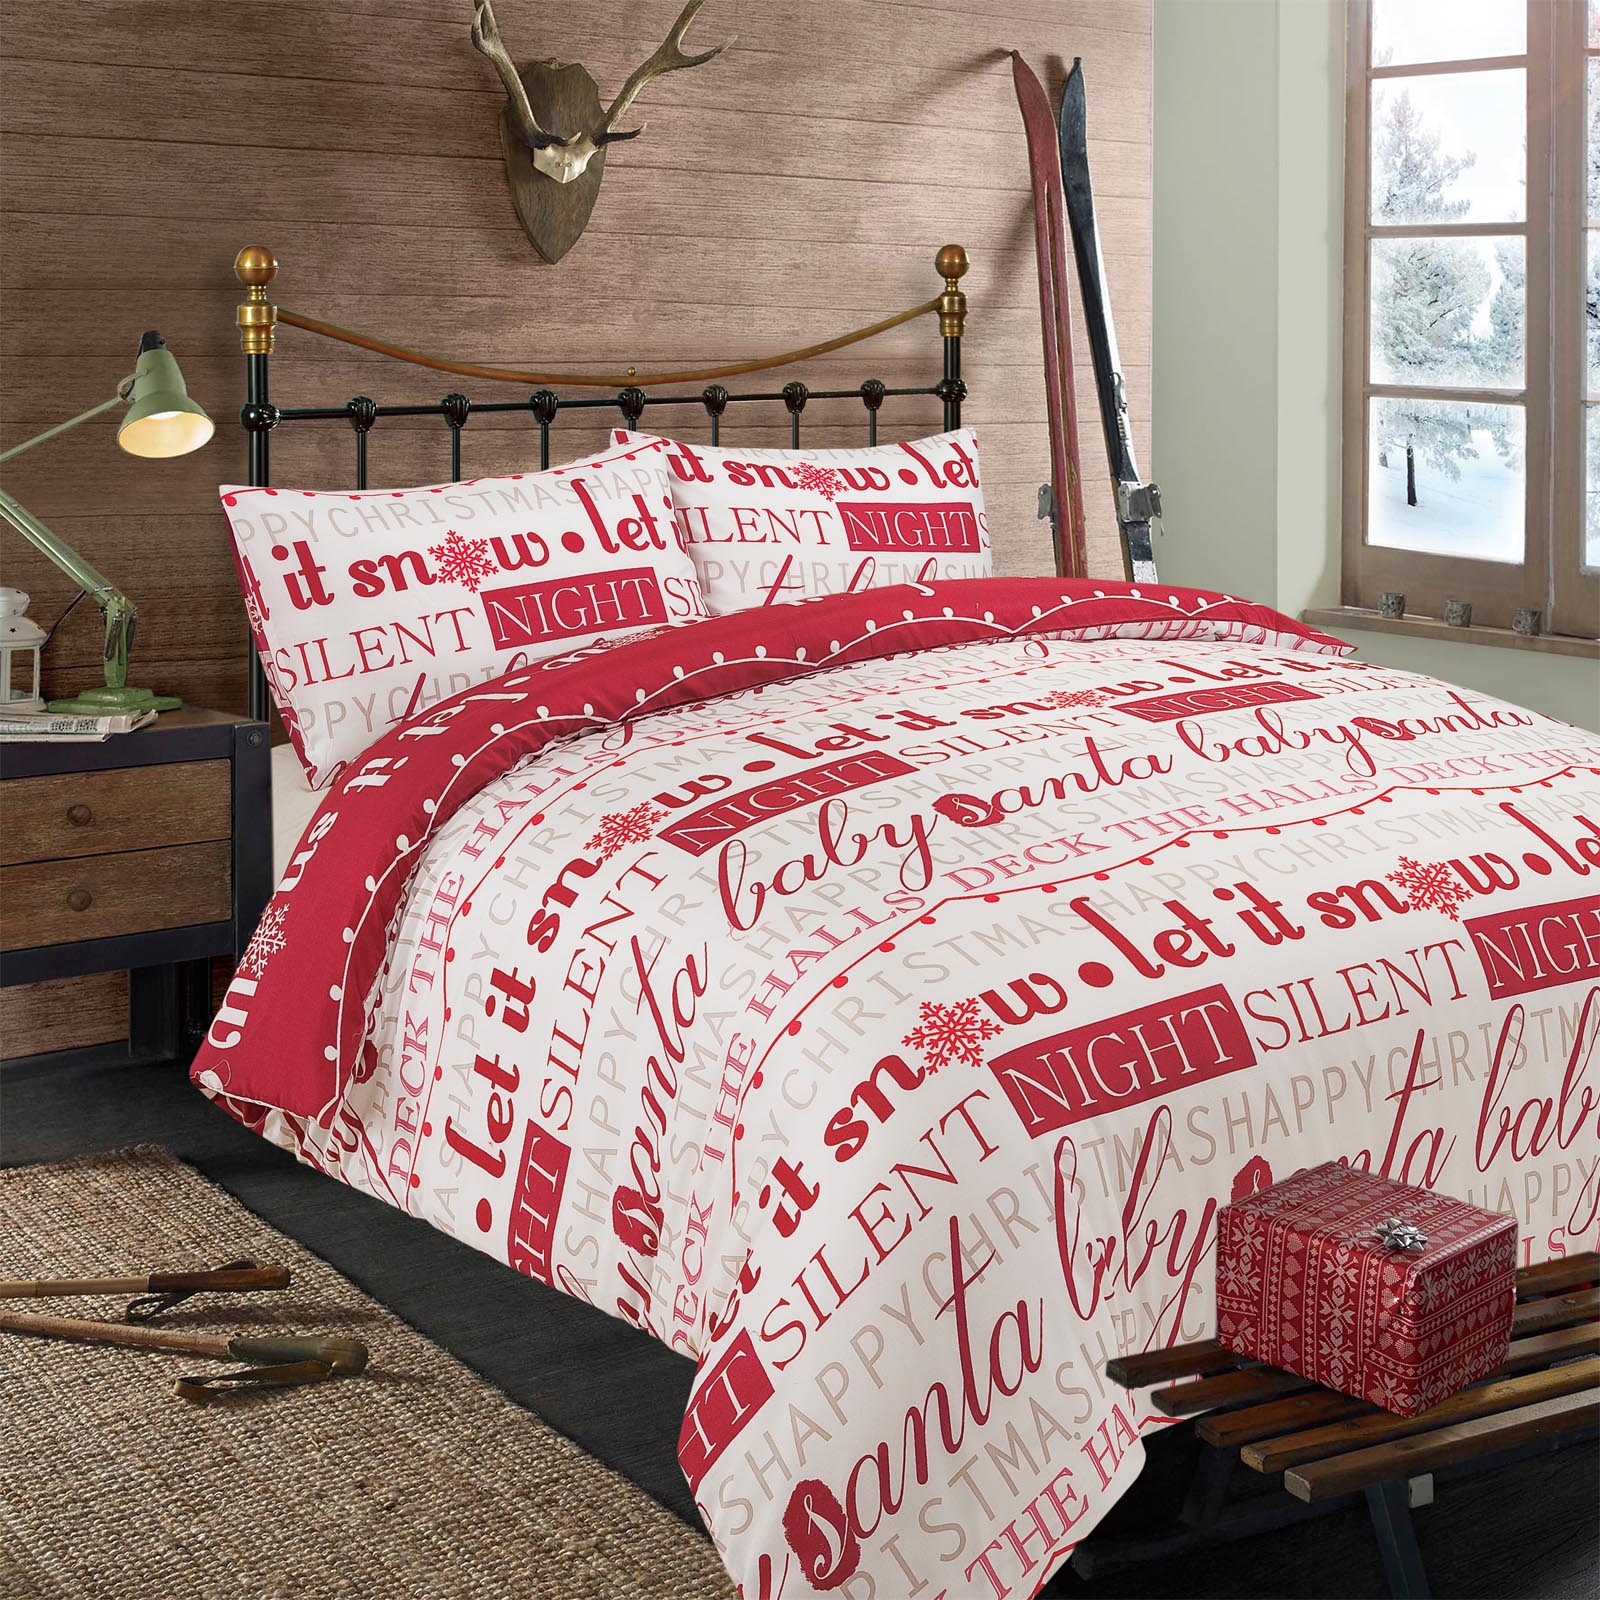 Christmas Bedding.Details About Dreamscene Let It Snow Duvet Cover With Pillow Case Christmas Bedding Set Red